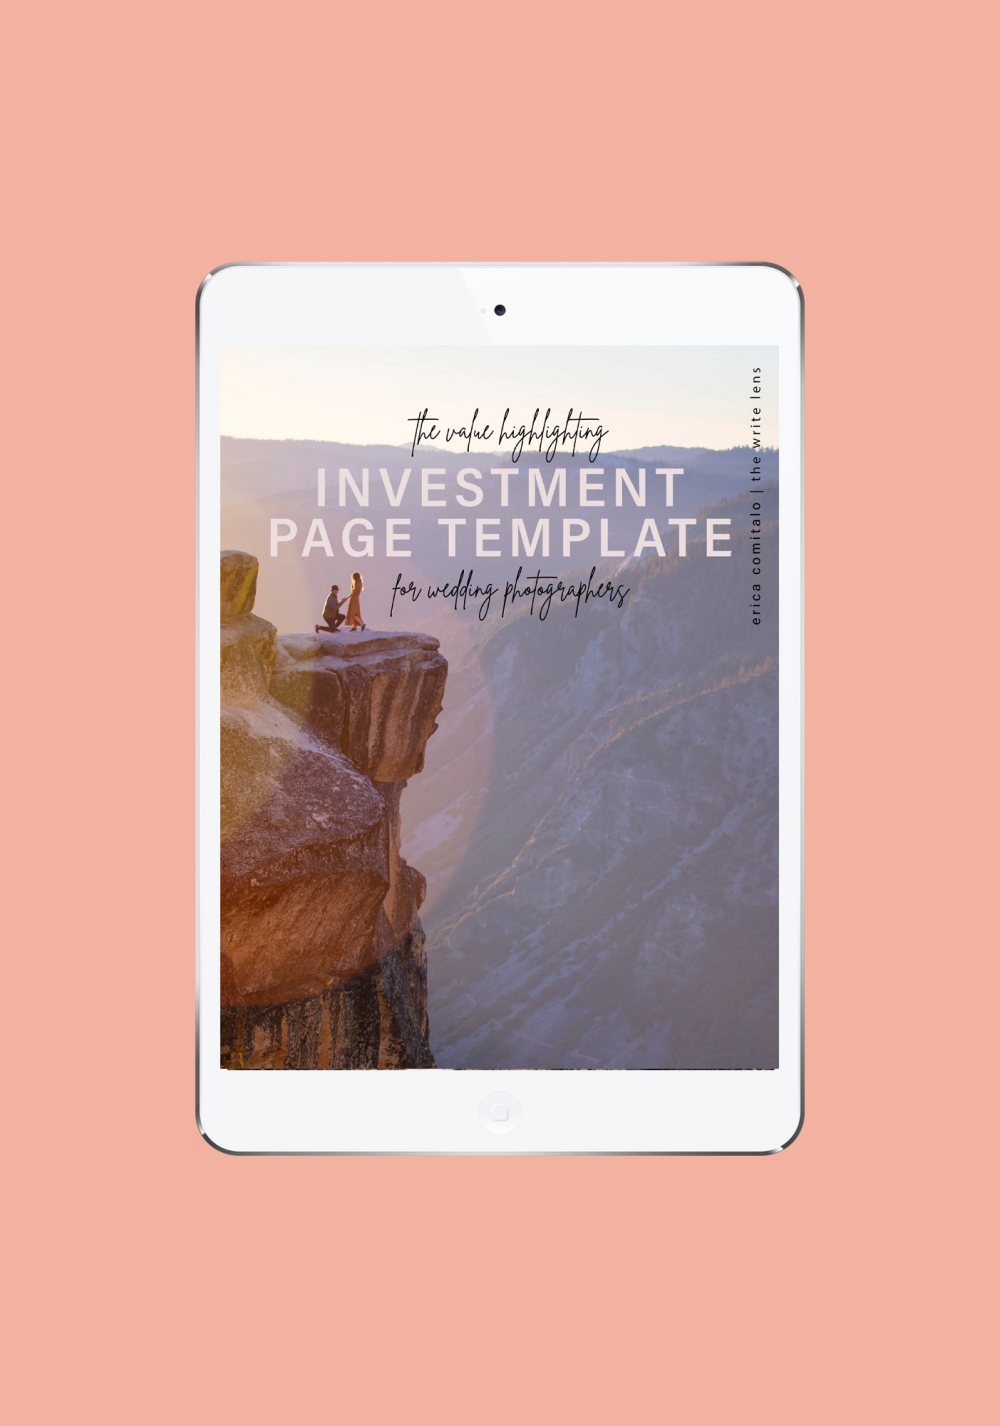 The Investment Page Template Cover